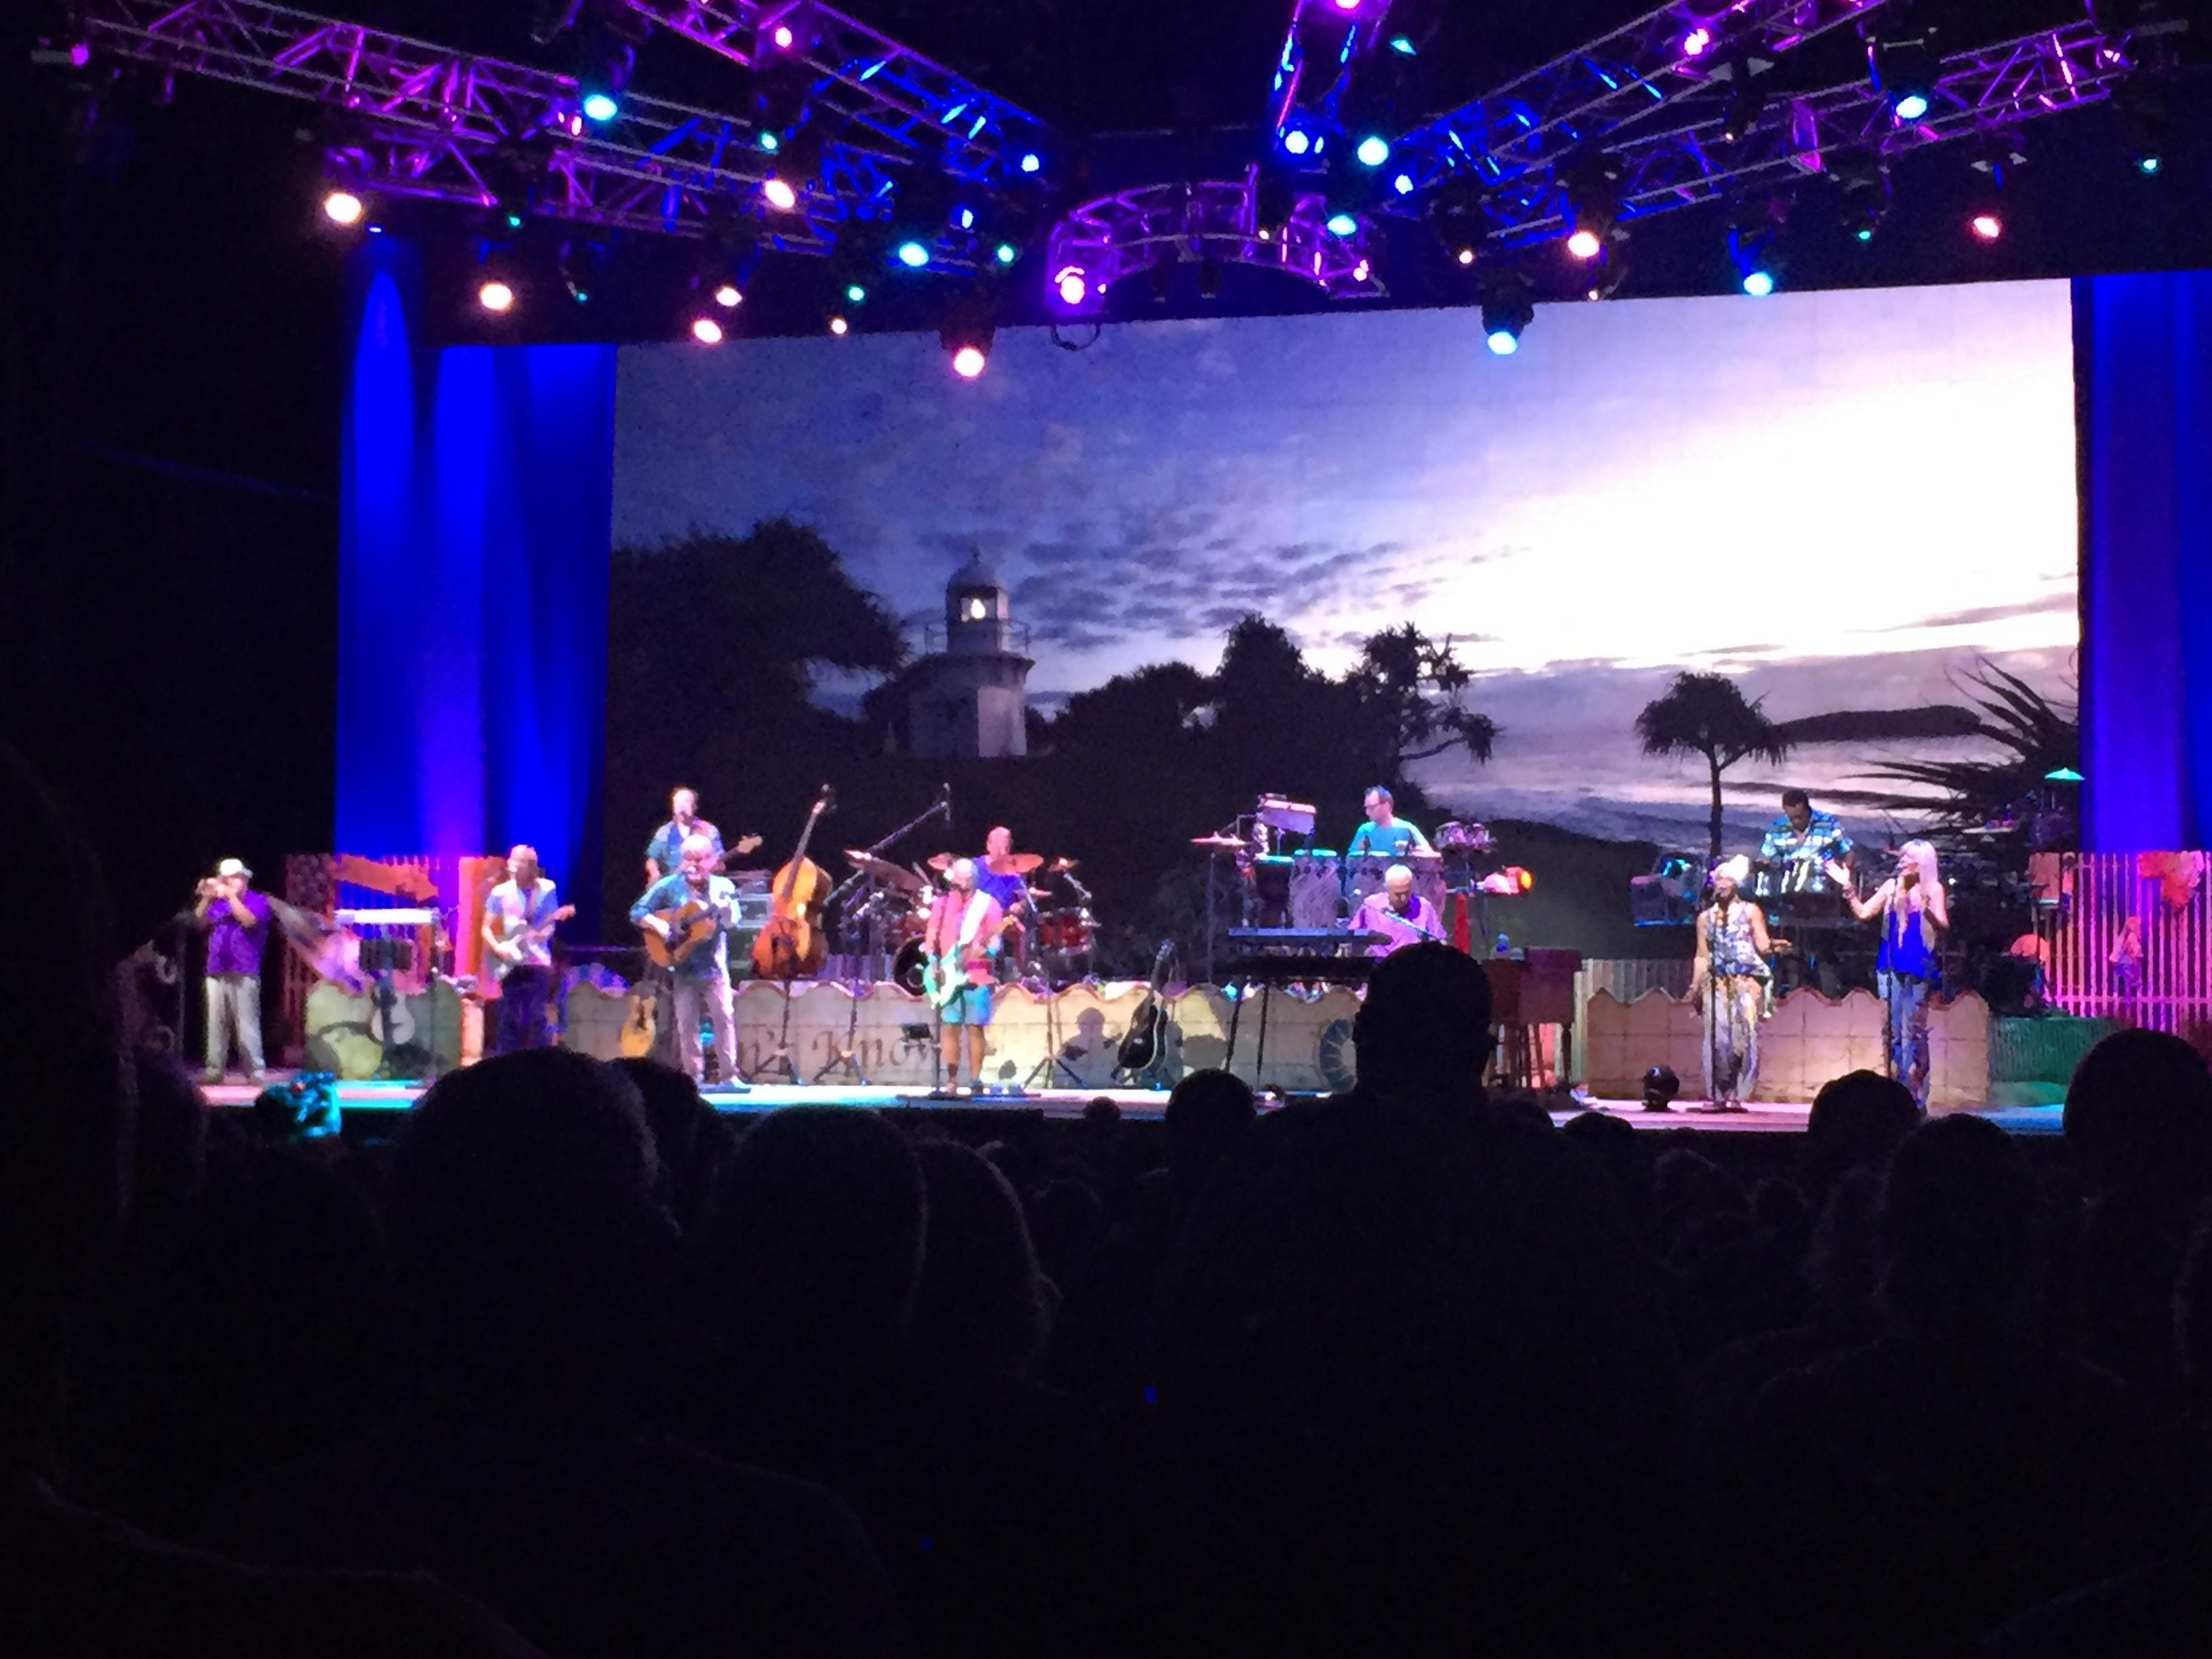 Veterans United Home Loans Amphitheater Section 102 Row J Seat 11